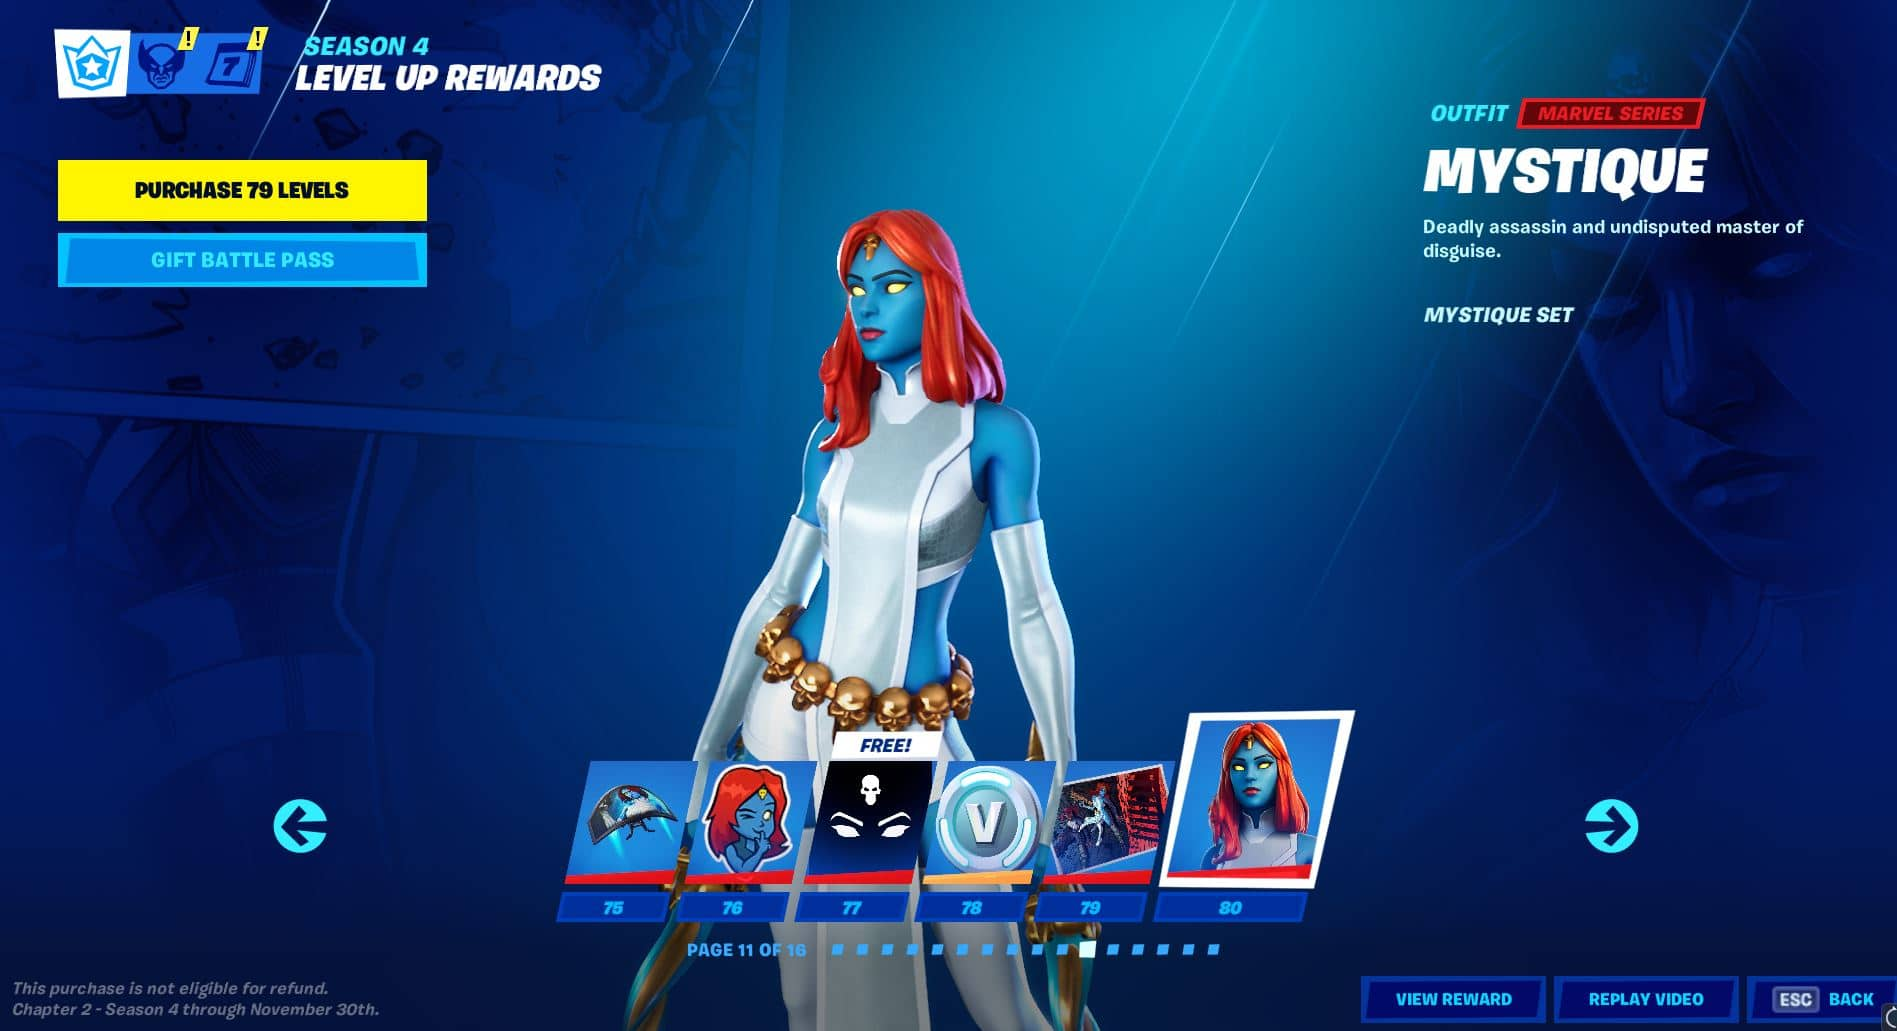 Fortnite Chapter 2, Season 4 Battle Pass Level 75 - 80